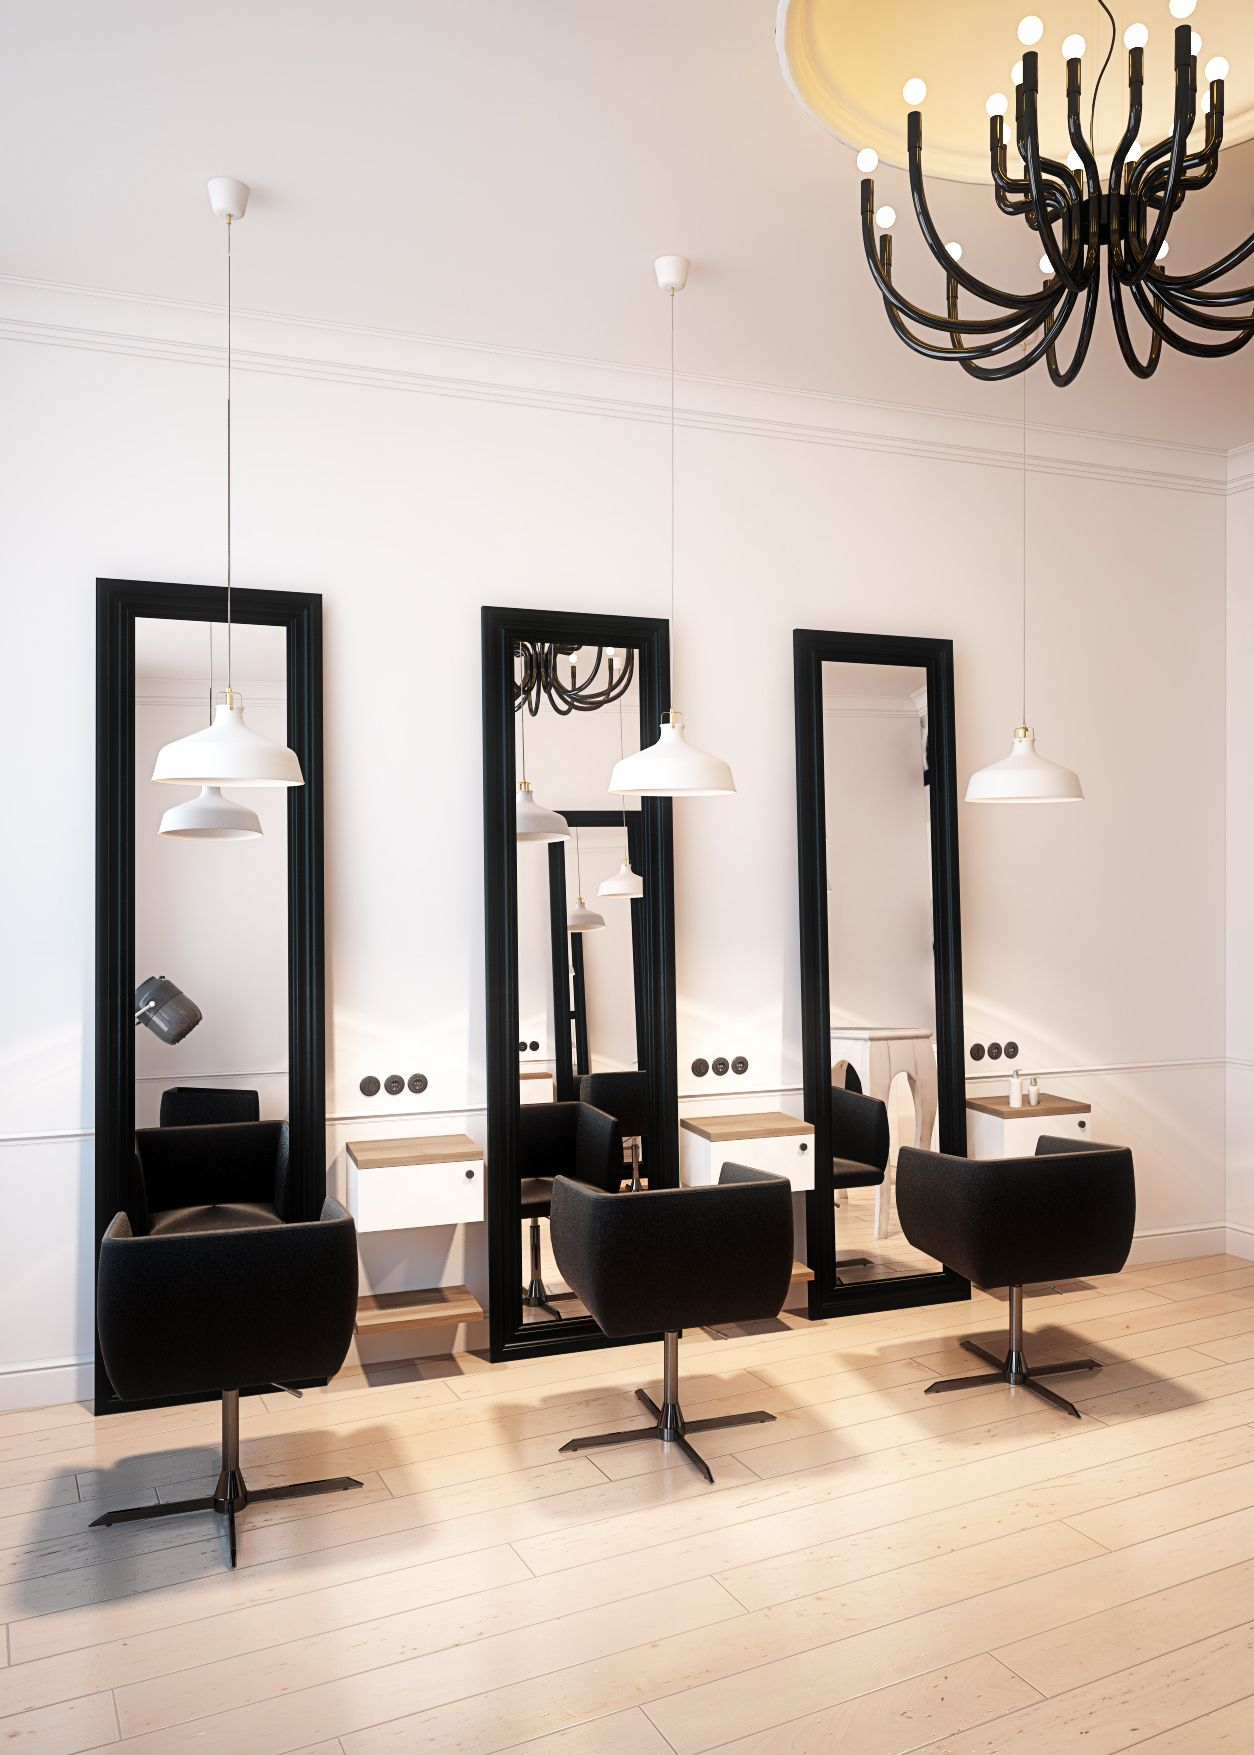 Hairdresser interior design in bytom poland archi group for Design moderne salon